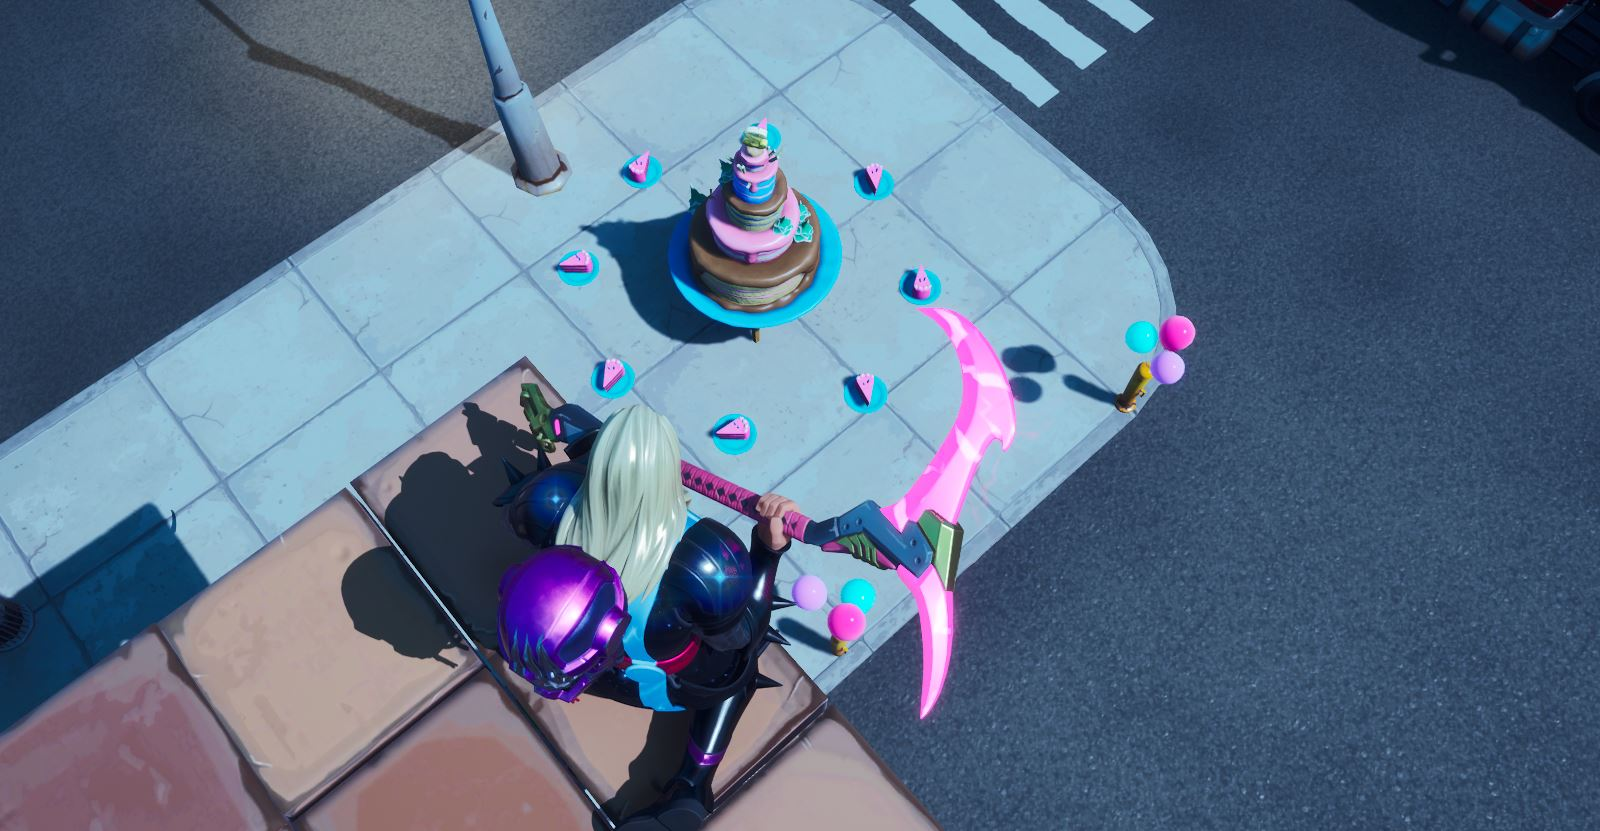 Birthday Cakes Fortnite Where Are The Birthday Cakes In Fortnite Locations 2020 Fortnite Insider